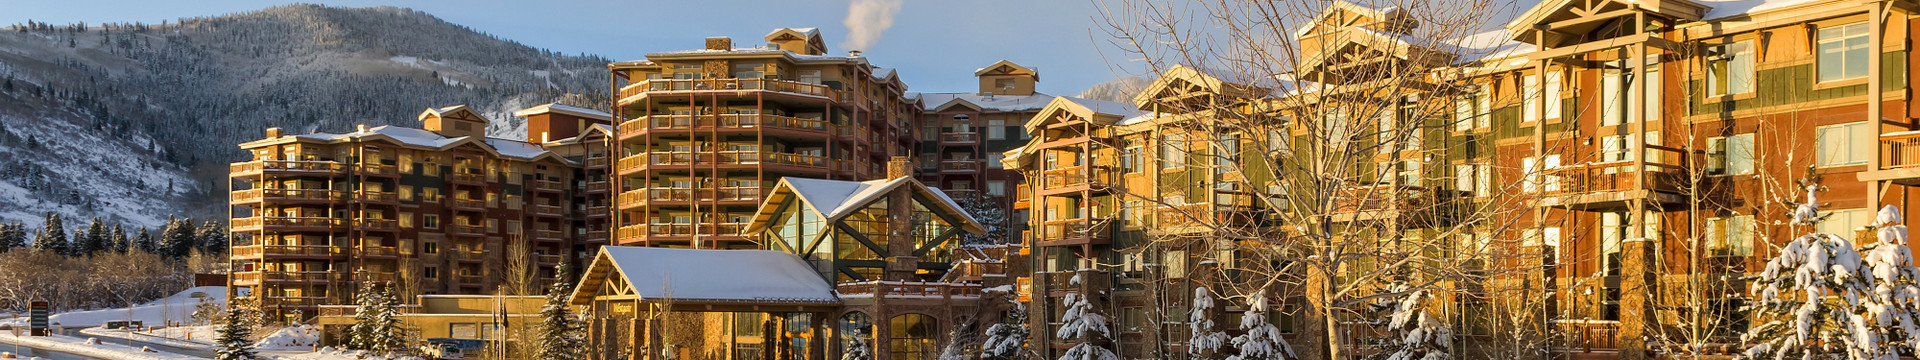 Exterior view of Westgate Park City Resort & Spa